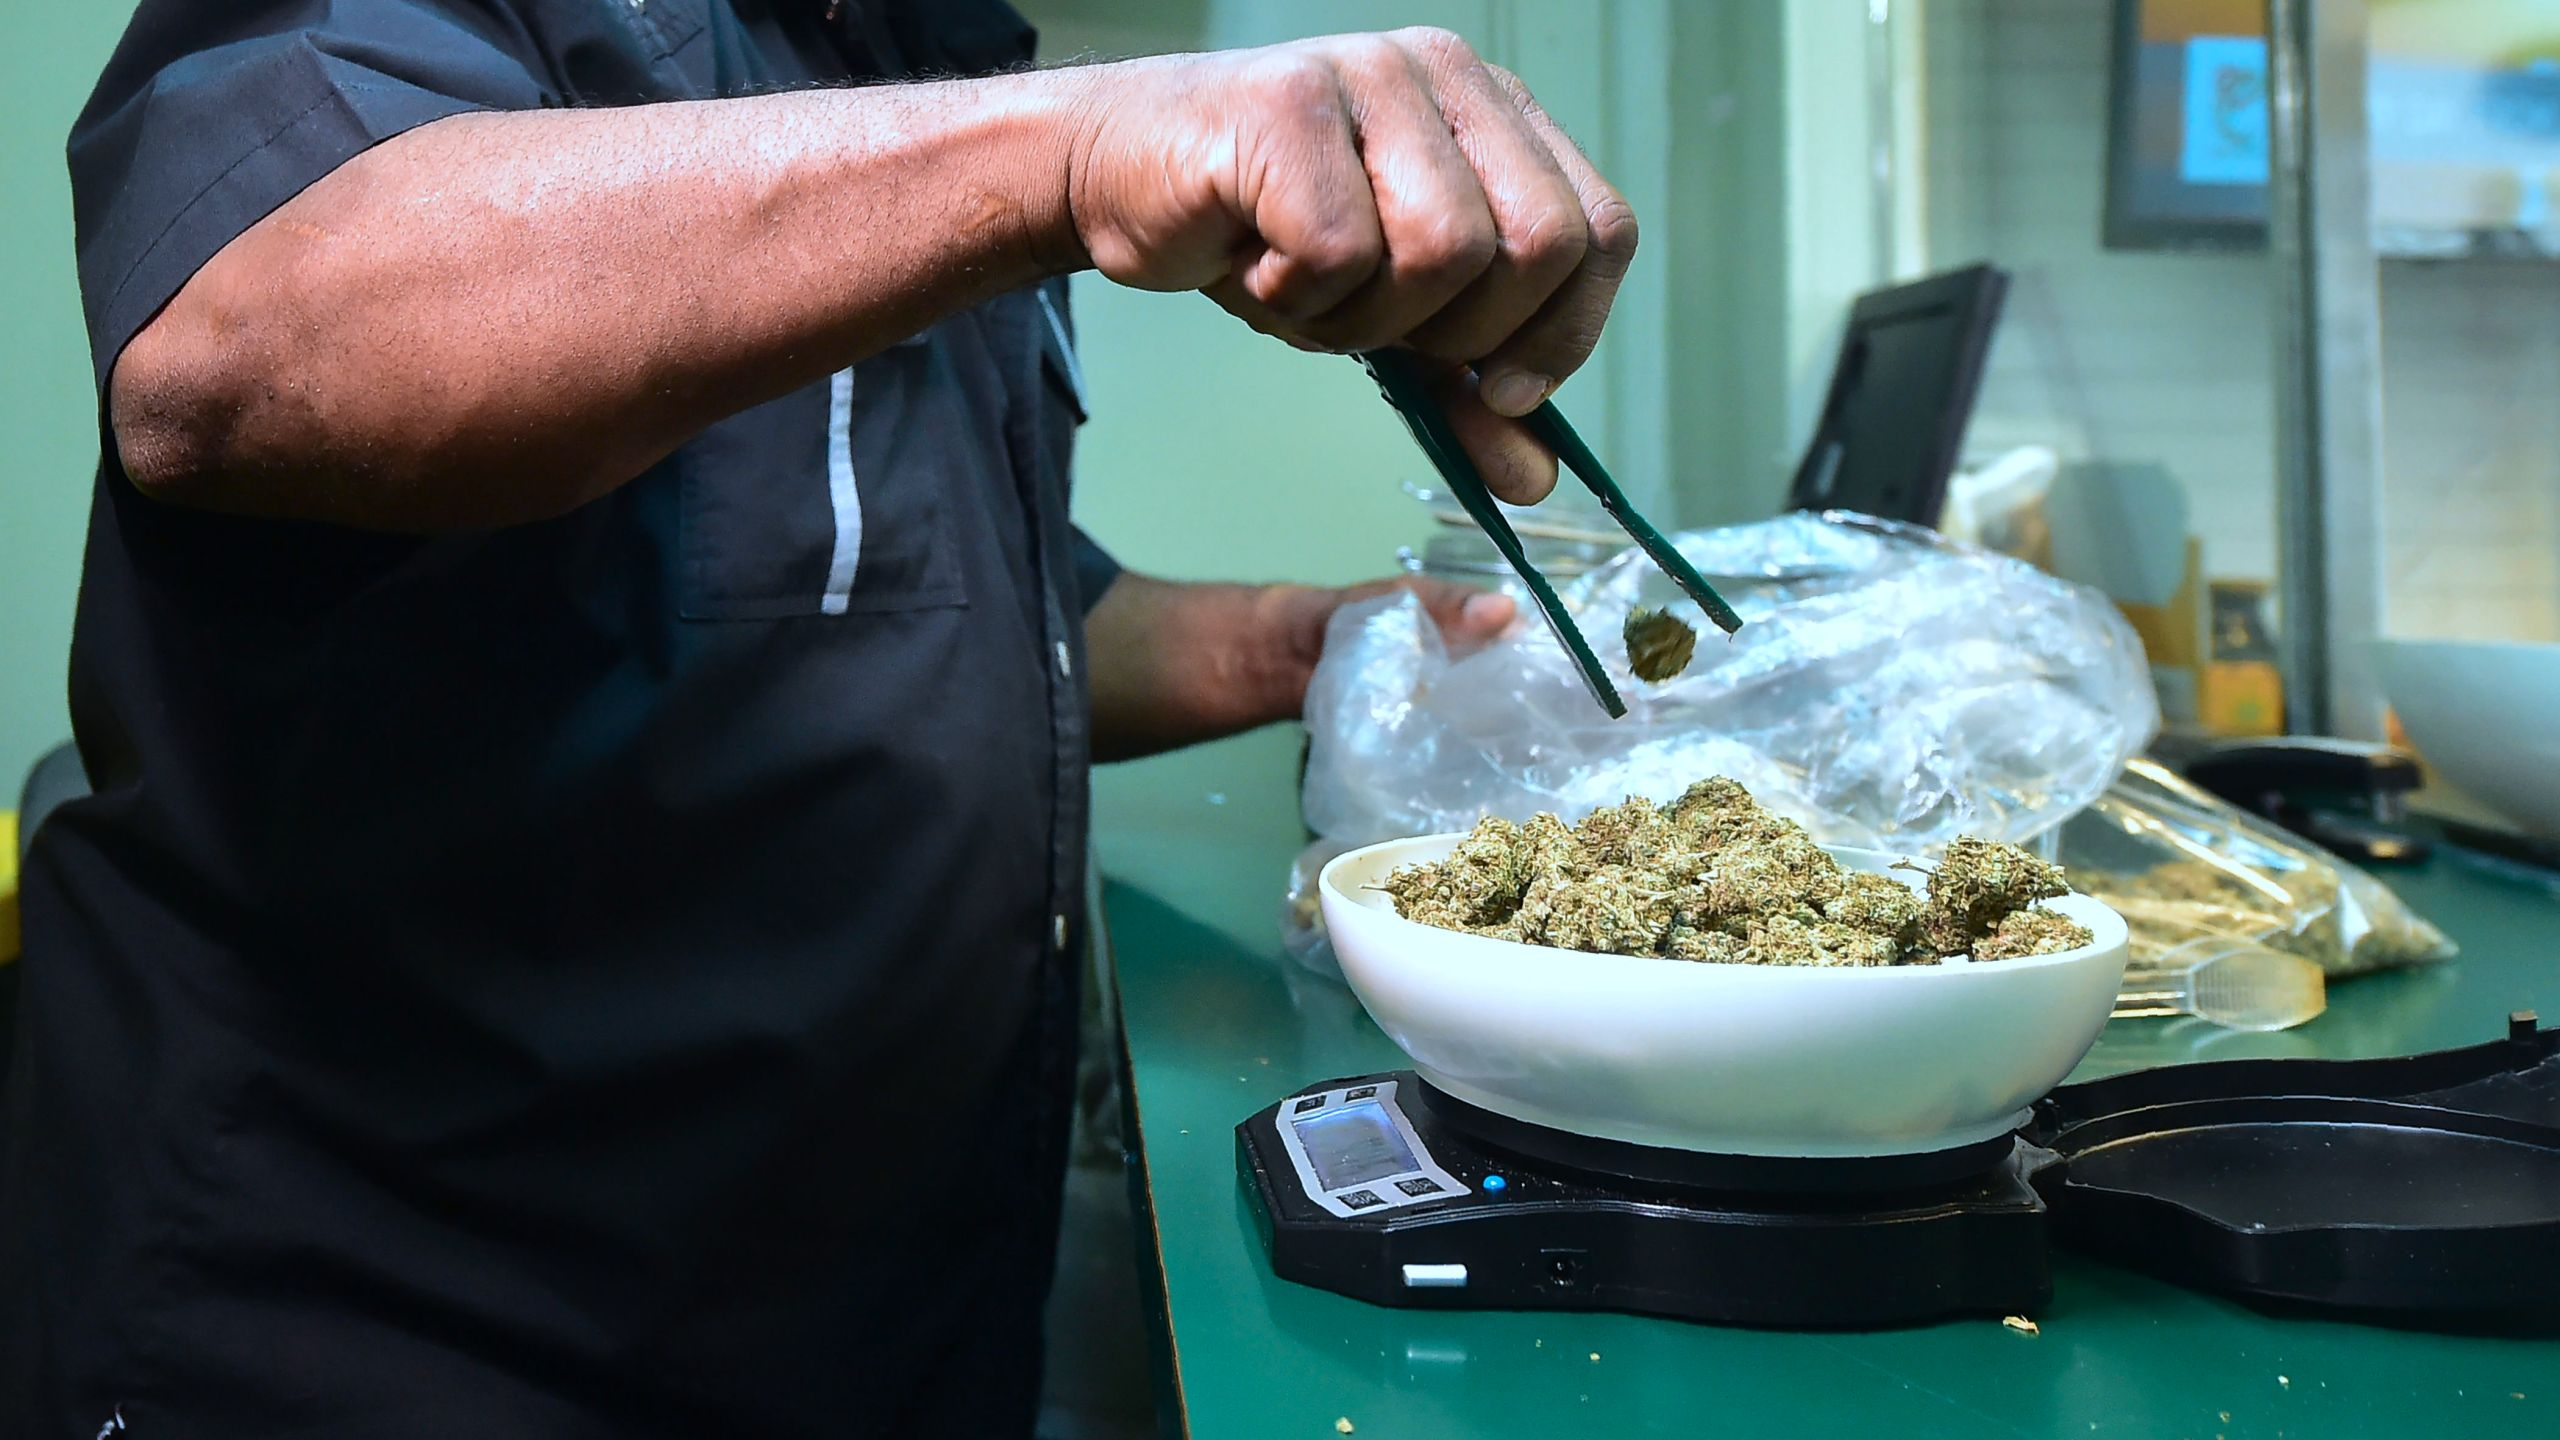 Marijuana is weighed on a scale at Virgil Grant's dispensary in Los Angeles on Feb. 8, 2018. (Credit: Frederic J. Brown / AFP / Getty Images)